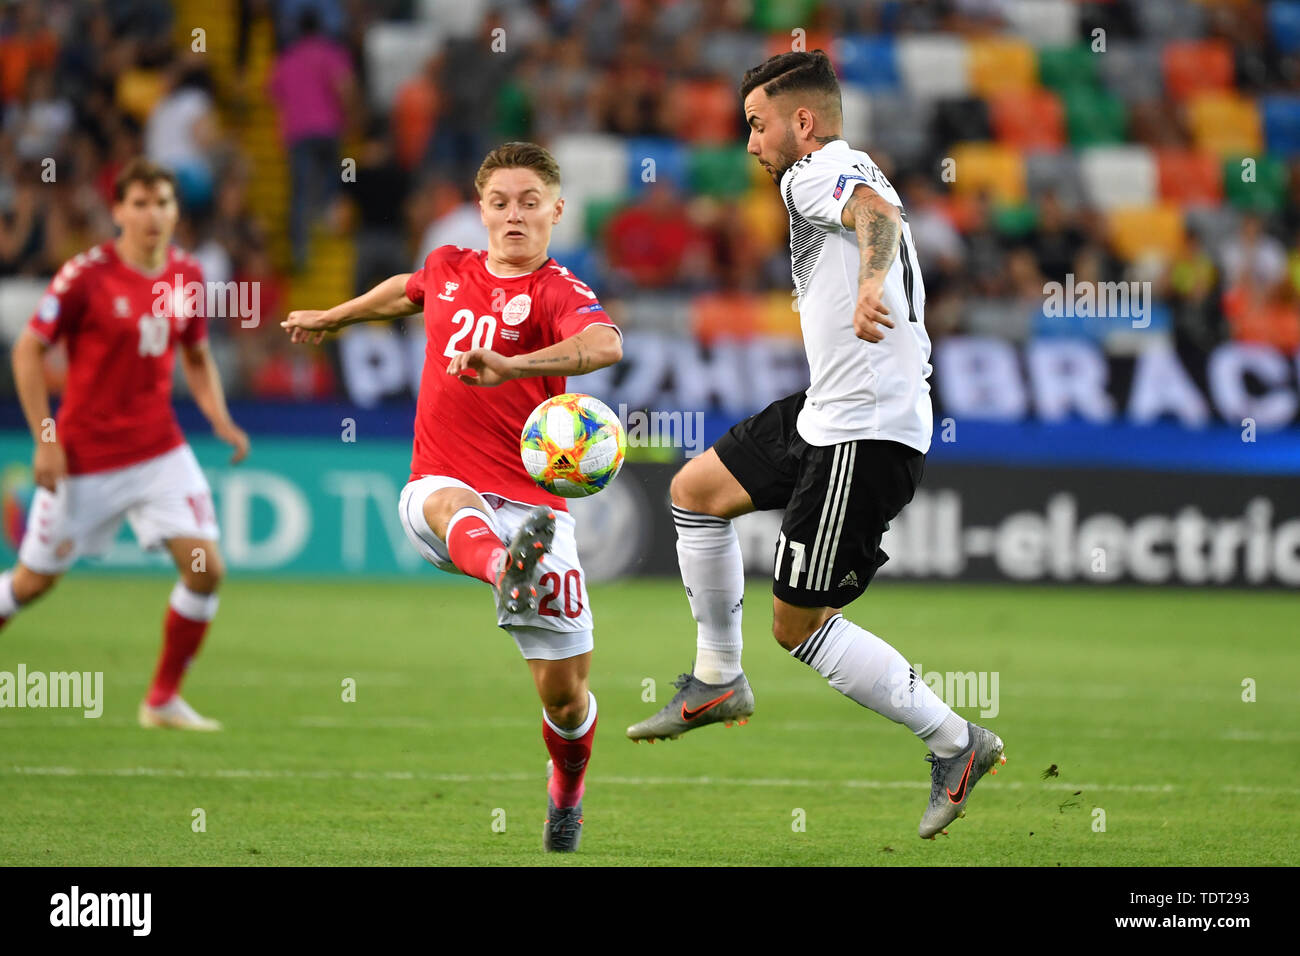 Marco RICHTER (GER), action, duels versus Magnus Kofod ANDERSEN (DEN). Germany (GER) -Daenemark (DEN) 3-1, on 17.06.2019 Stadio Friuli Udine. Football U-21, UEFA Under21 European Championship in Italy/SanMarino from 16.-30.06.2019. | Usage worldwide - Stock Image